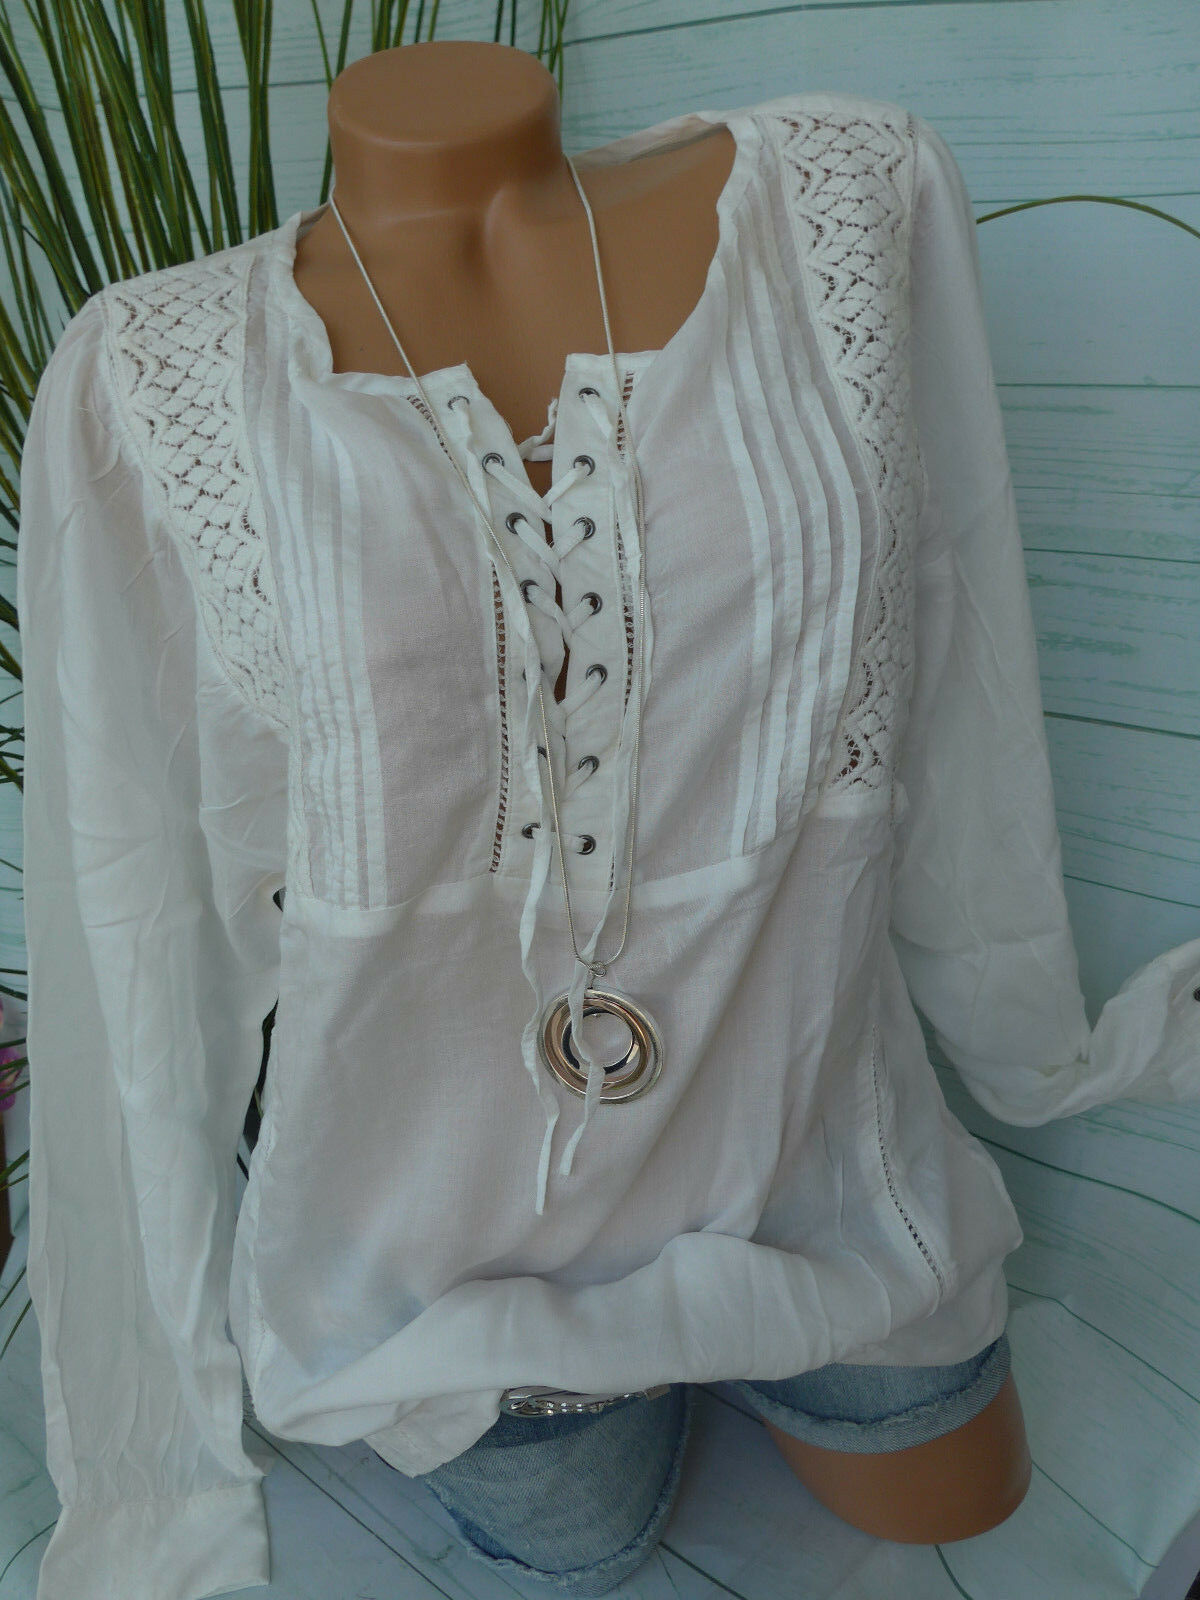 Garcia Jeans Blouse Shirt Tunic Size S up to XXL White with Lace (056) New